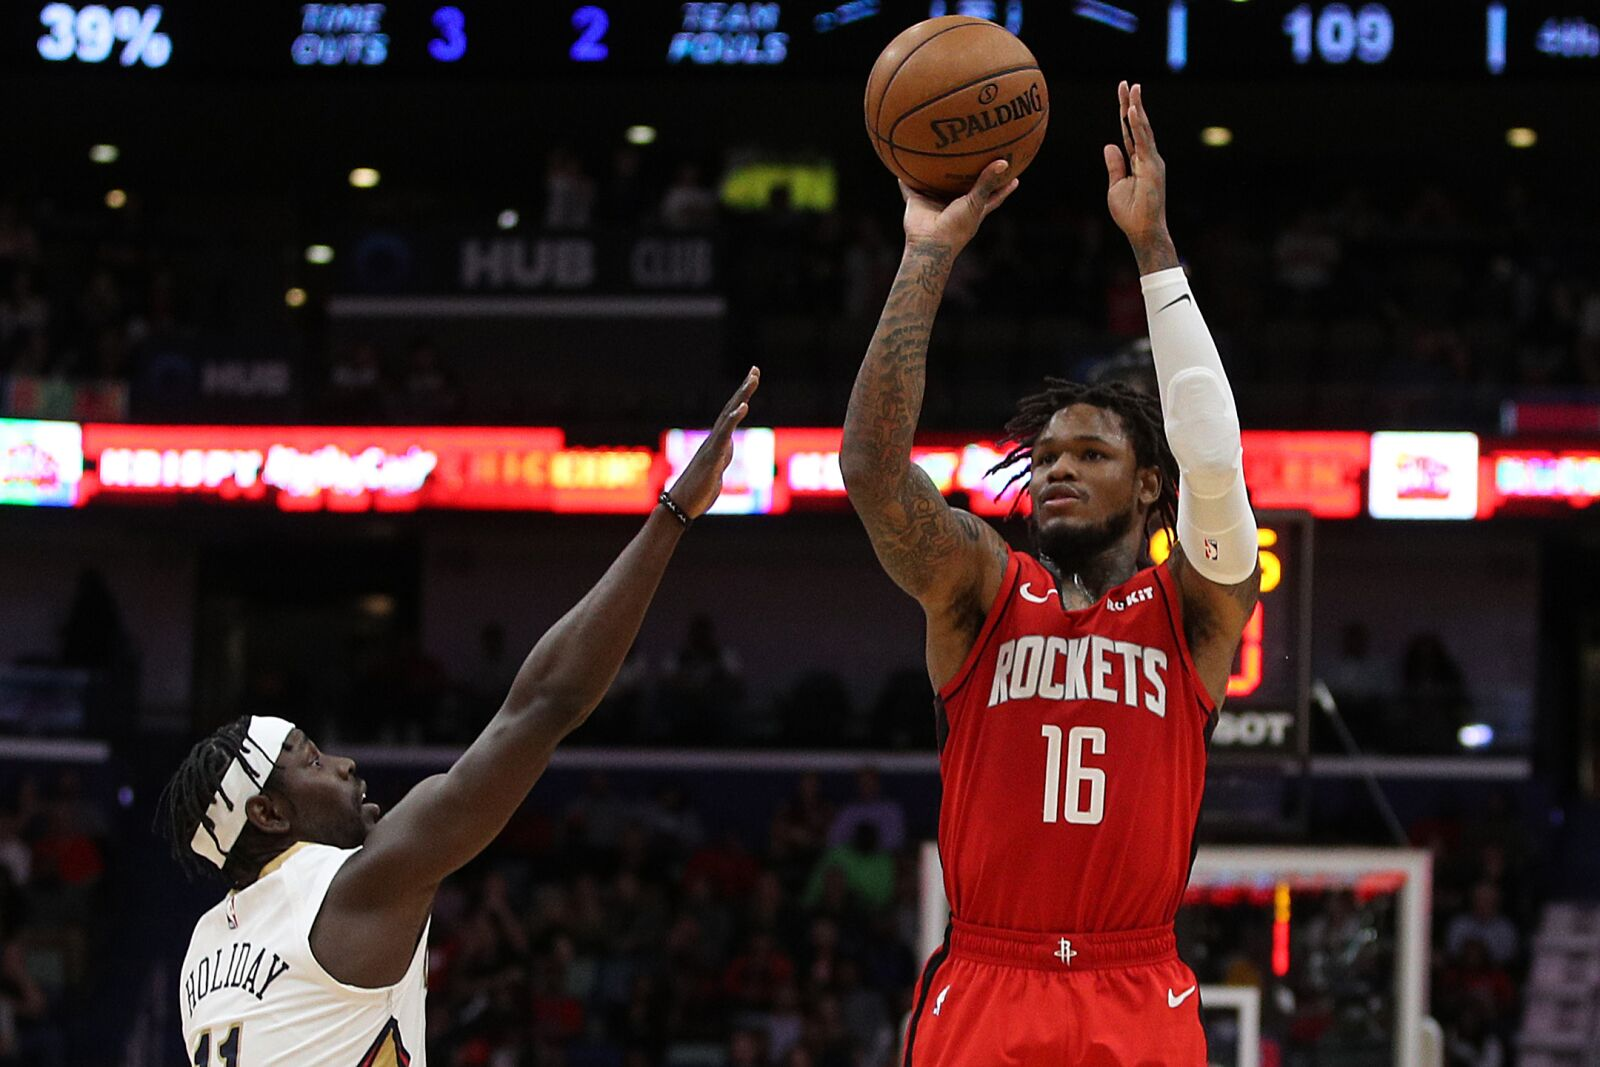 Houston Rockets: Ben McLemore continues to be a key crutch for the team